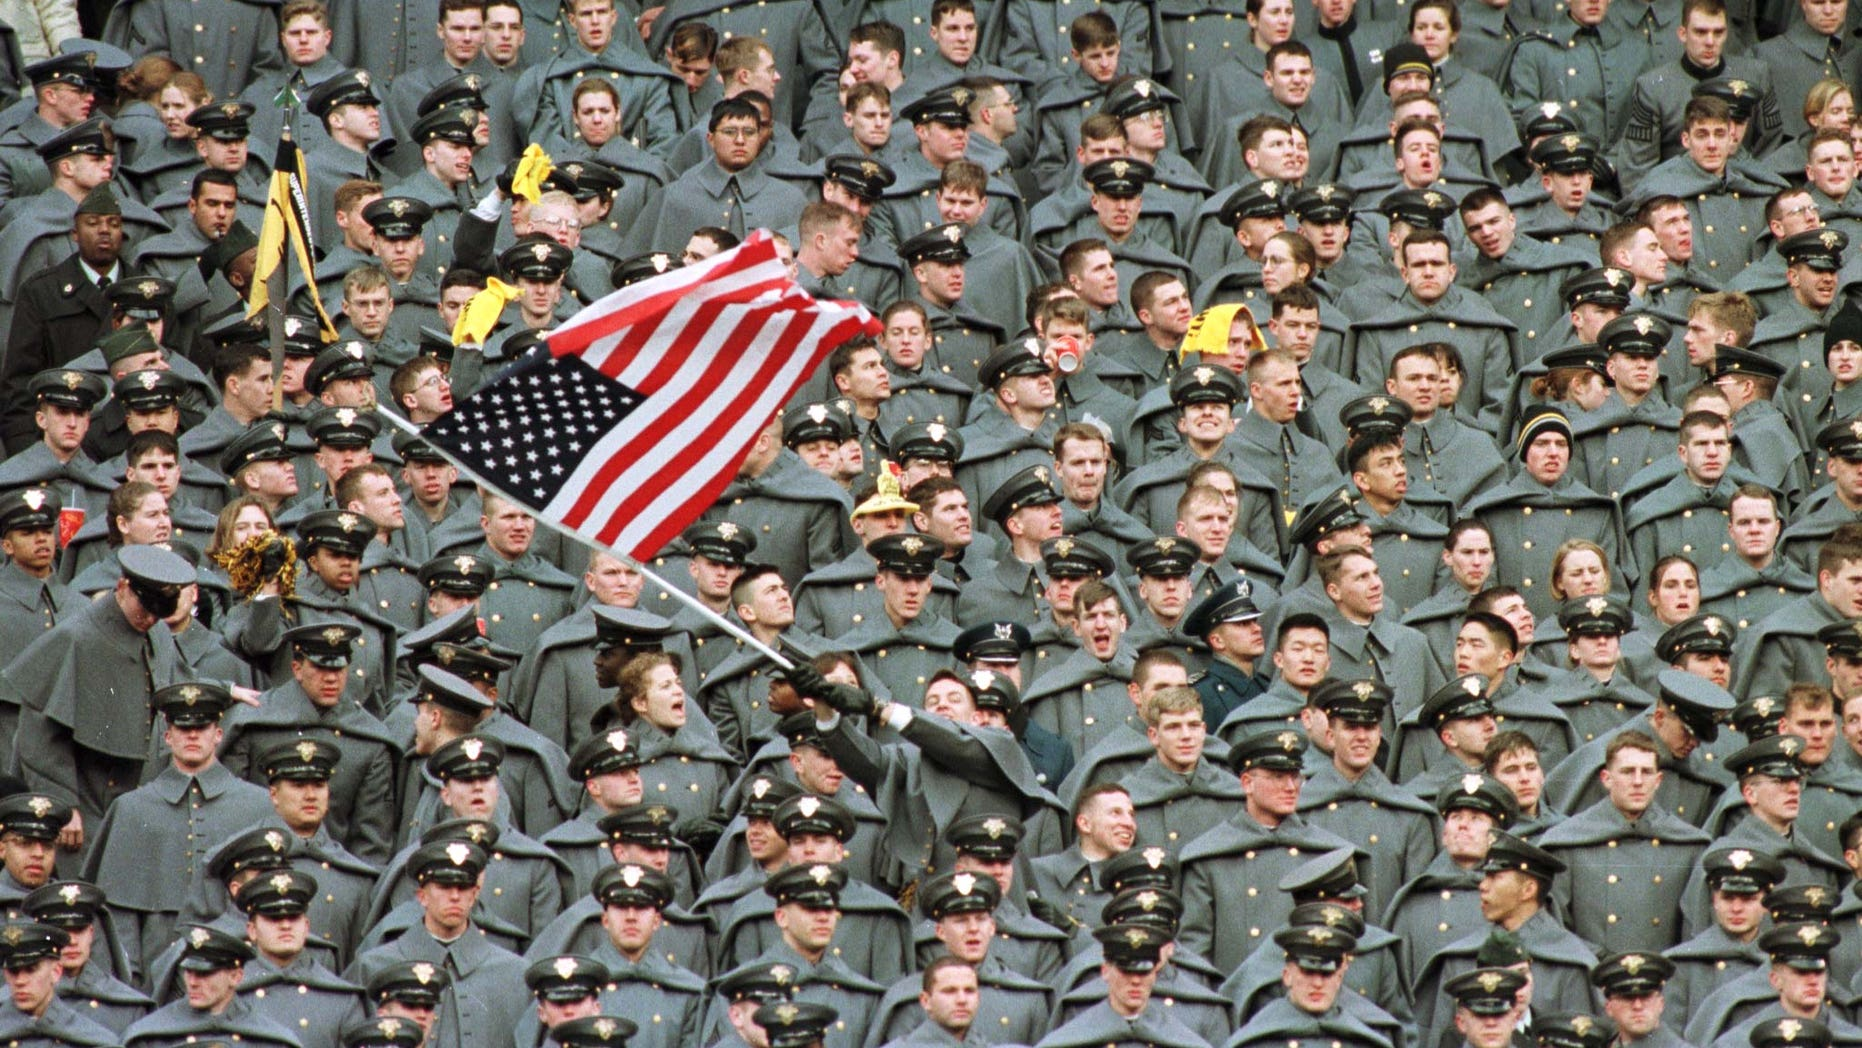 A lone West Point Cadet waves the American flag amid a sea of fellow Cadets as they watch Navy take a commanding lead in the first half of the Army-Navy game, December 6 1997 at Giants Stadium in East Rutherford.